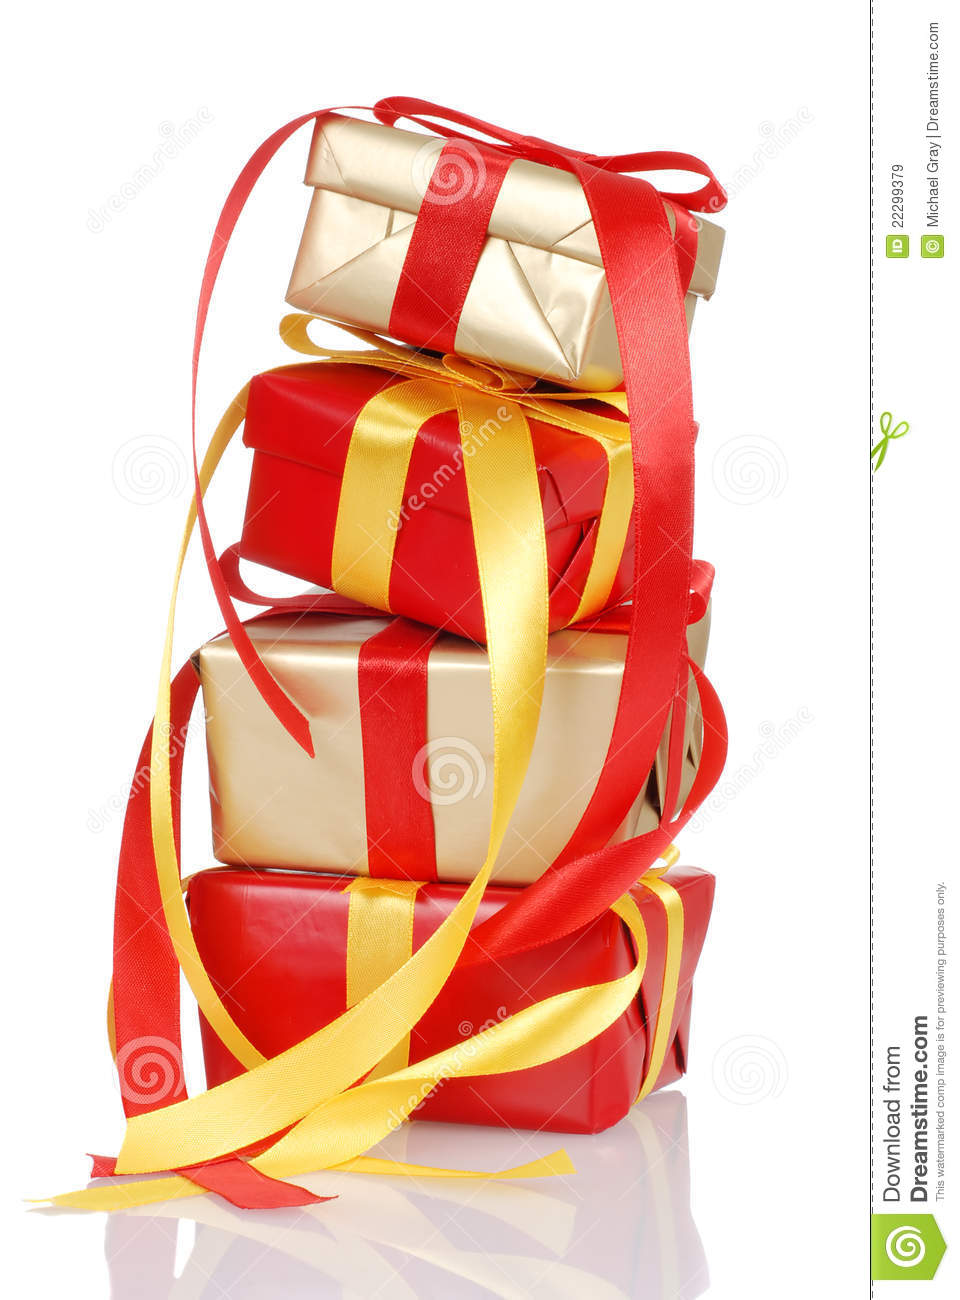 Stack of presents christmas clipart suggest